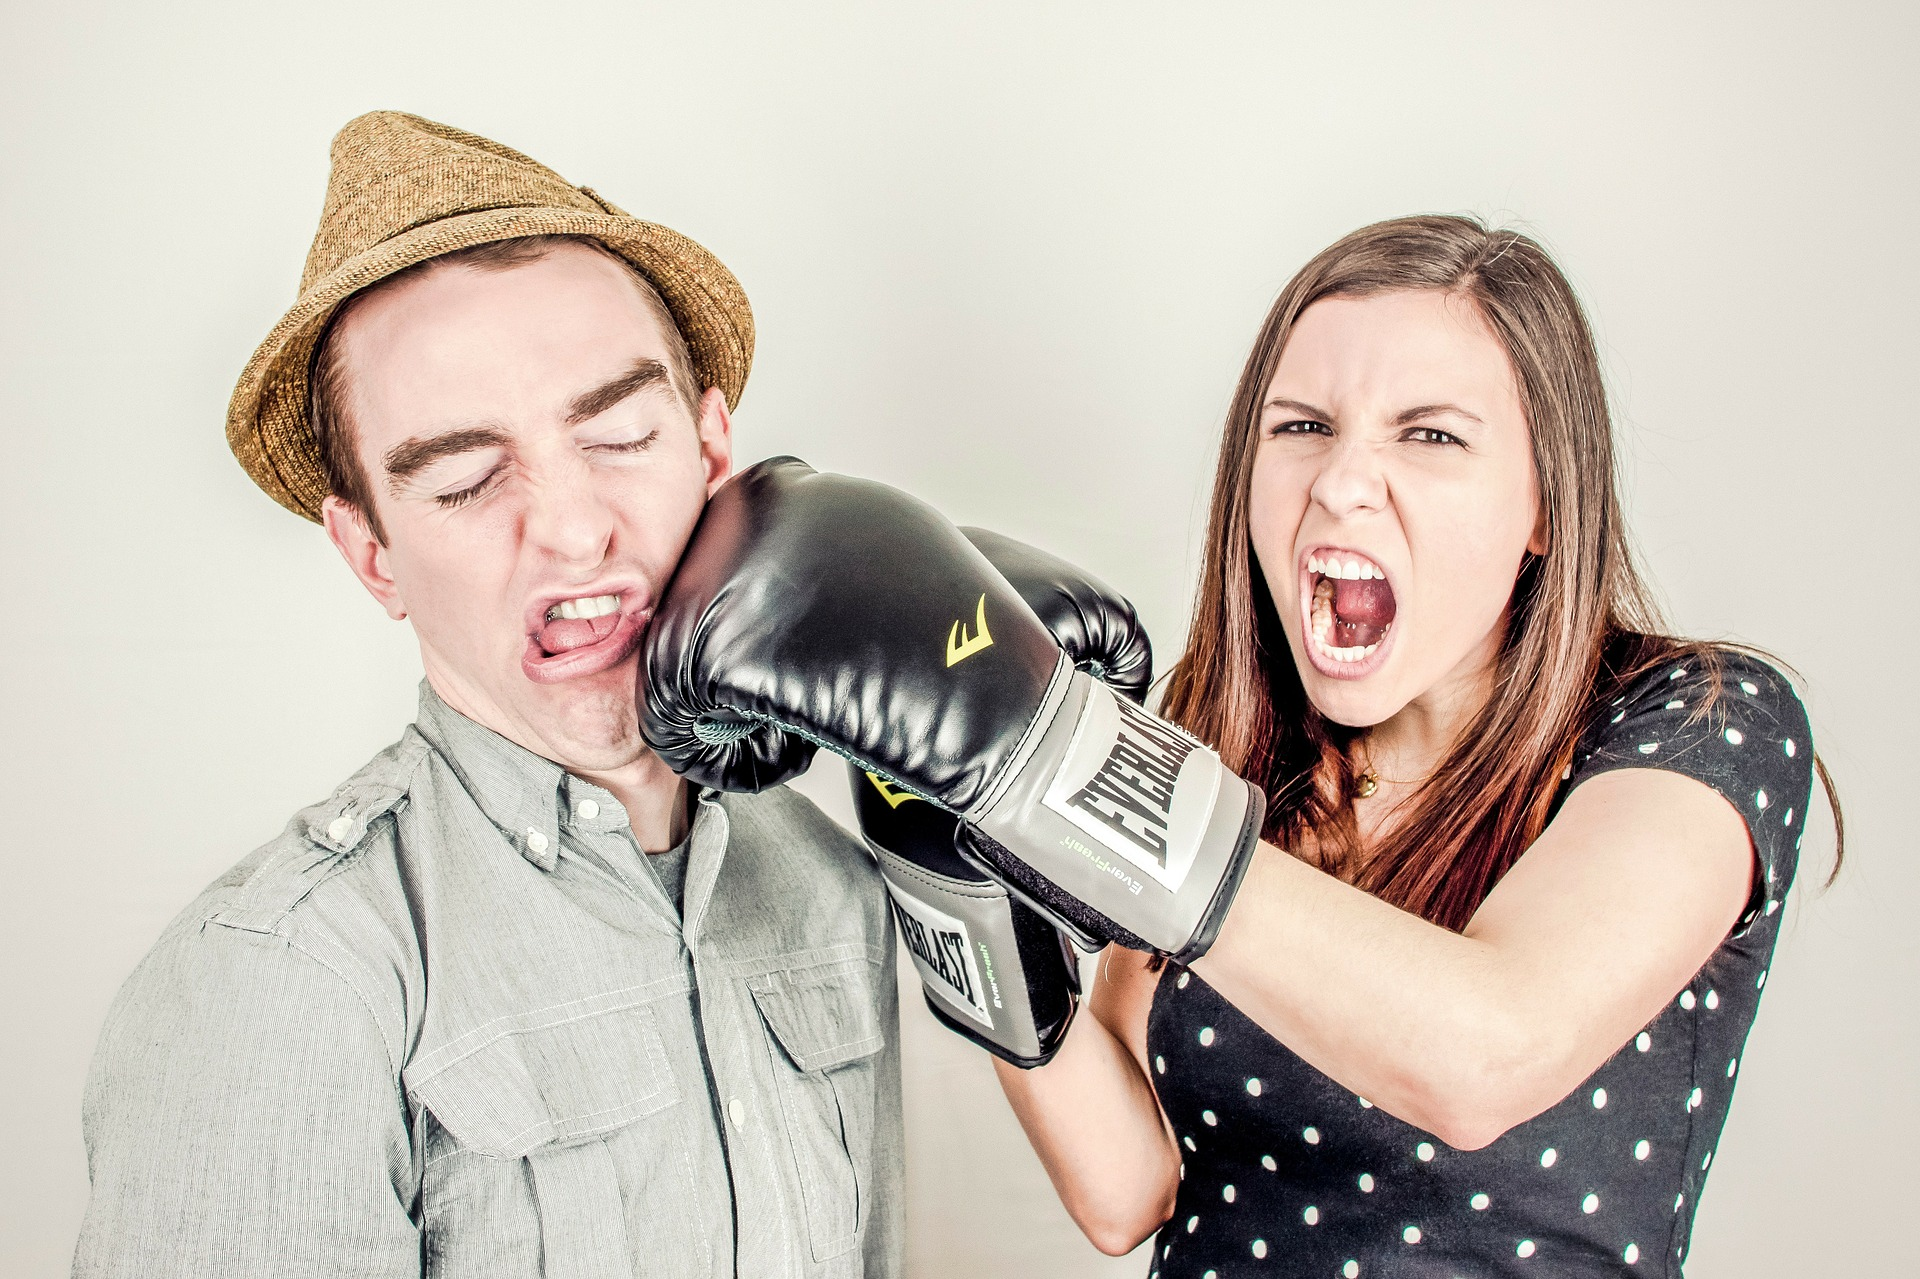 5 Ways Leaders Can Handle Conflict More Effectively